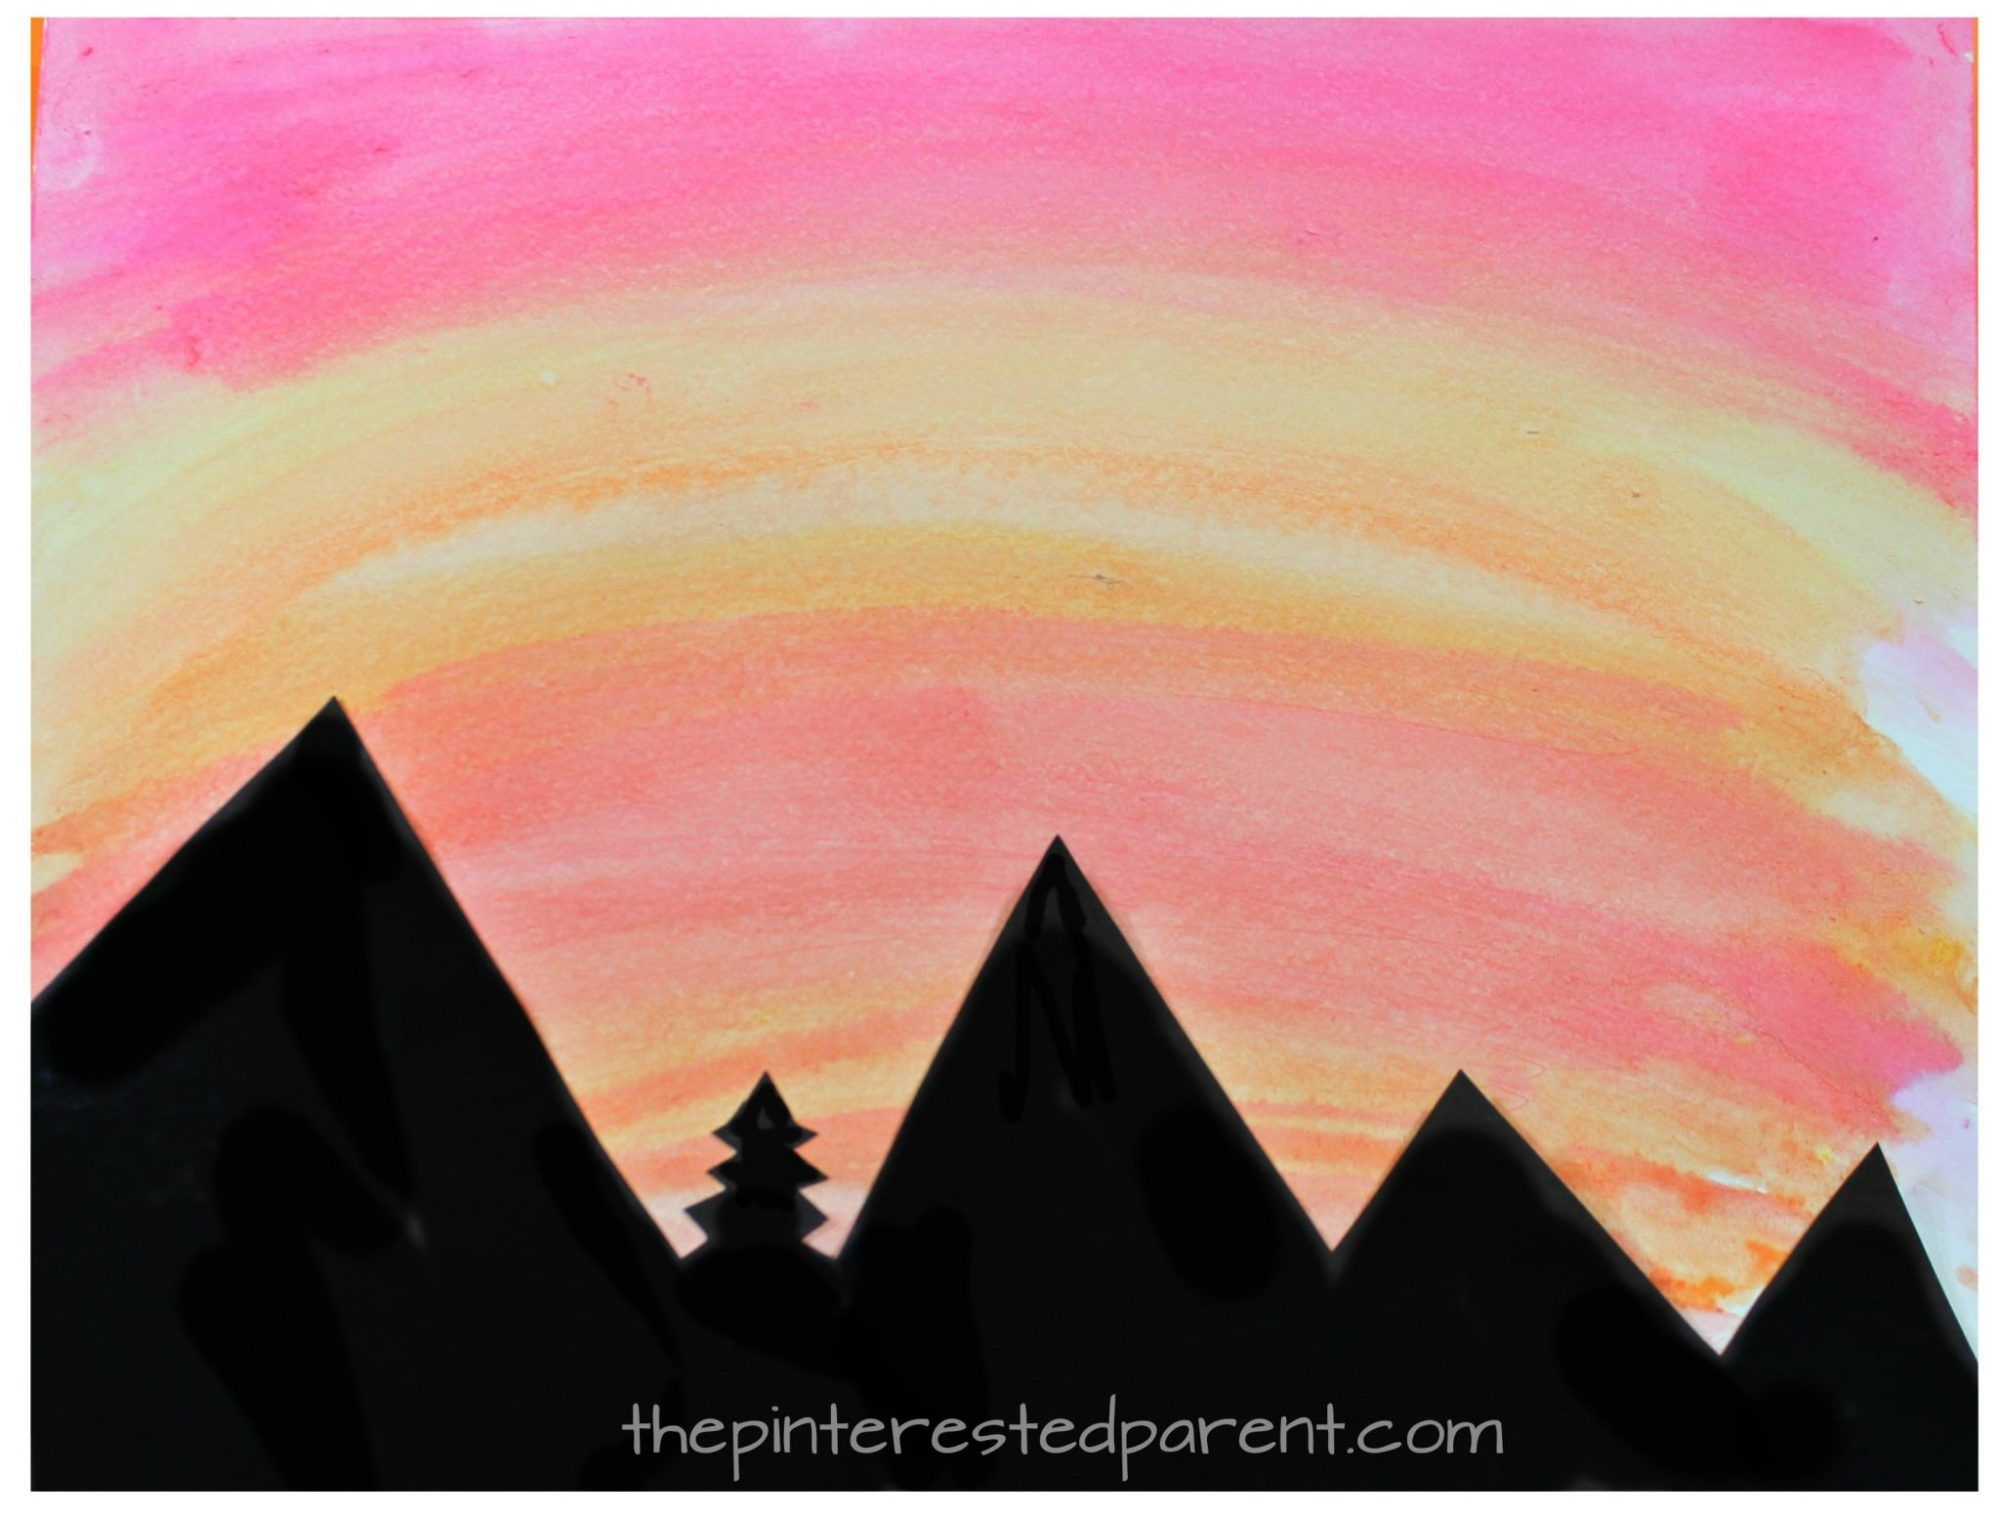 2000x1517 Watercolor Silhouette Landscapes Free Printable, Silhouettes